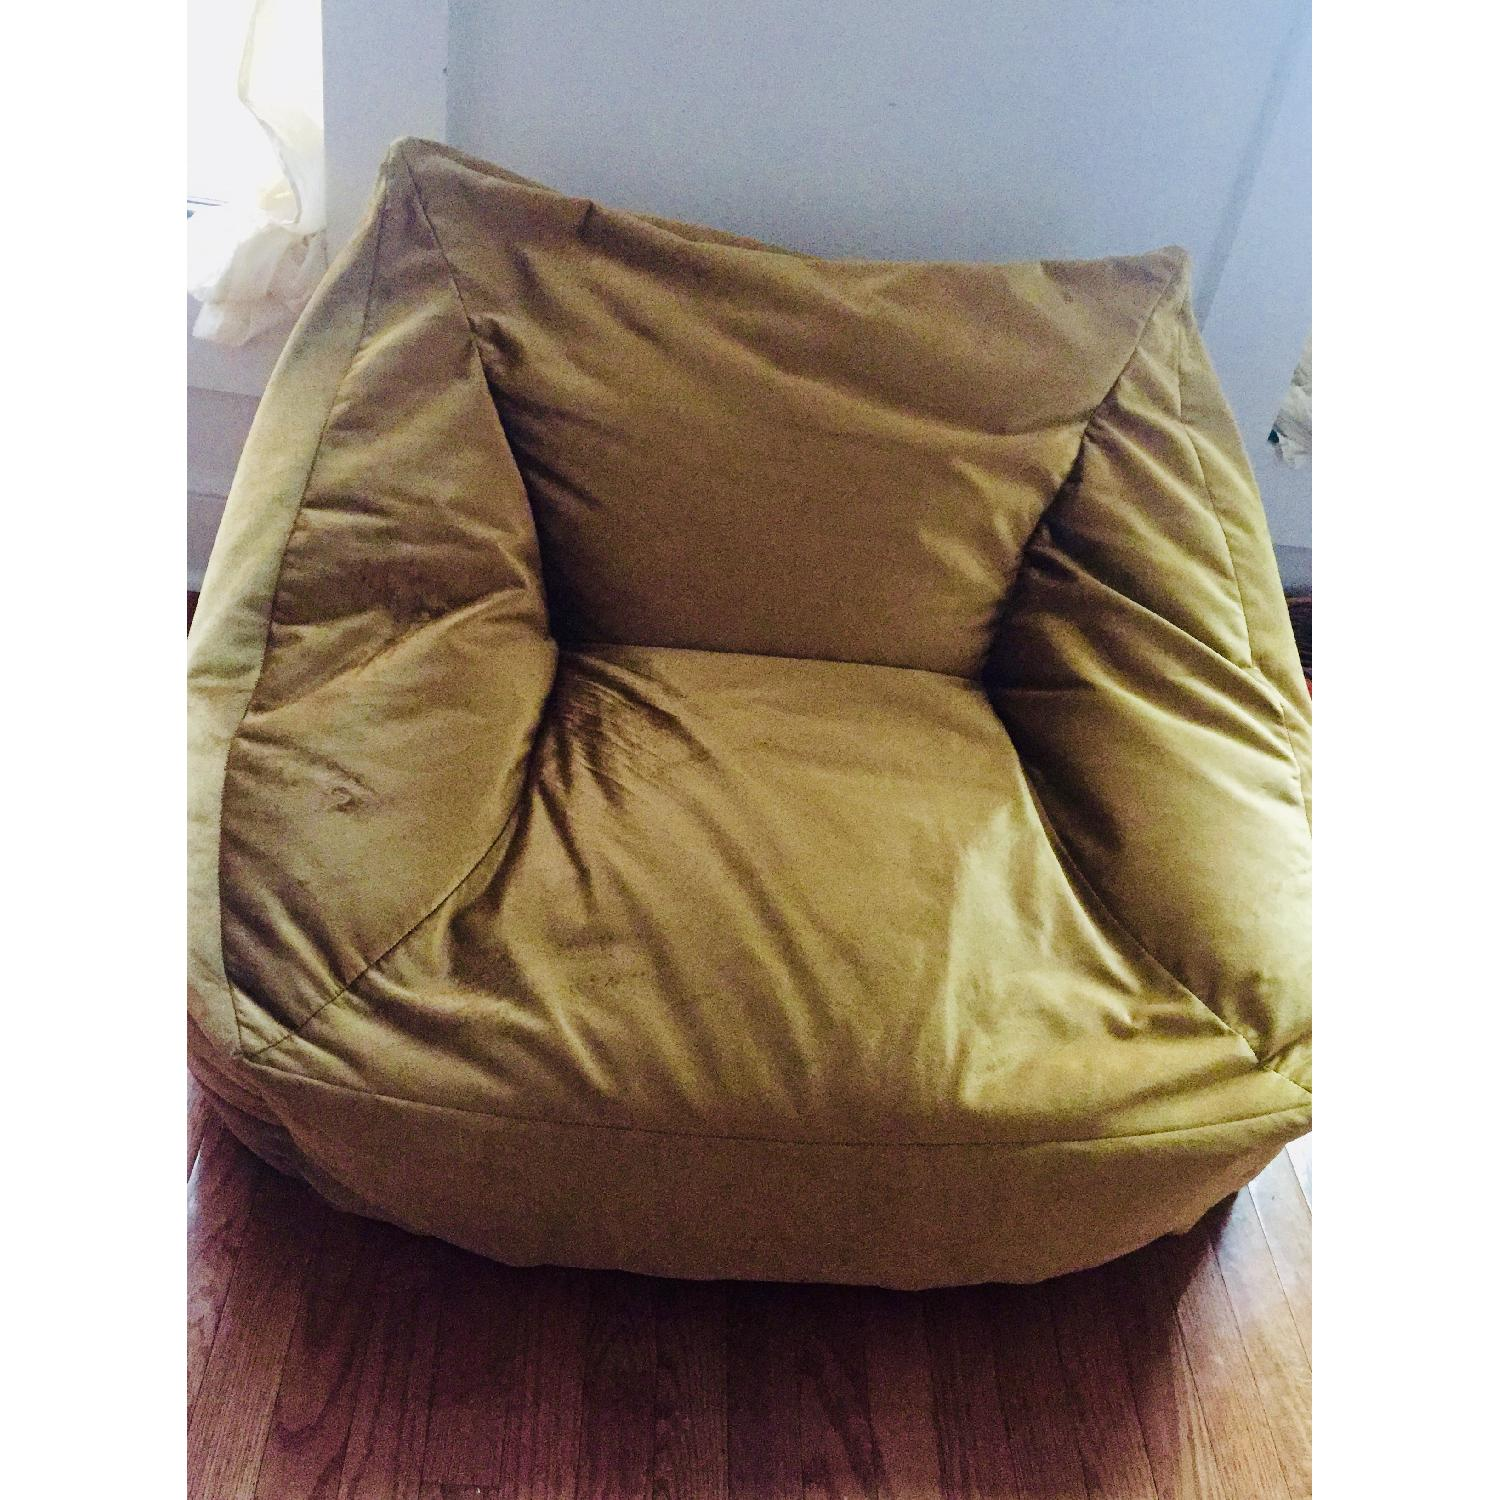 Urban Outfitter Cooper Velvet Lounge Chair in Gold - image-3